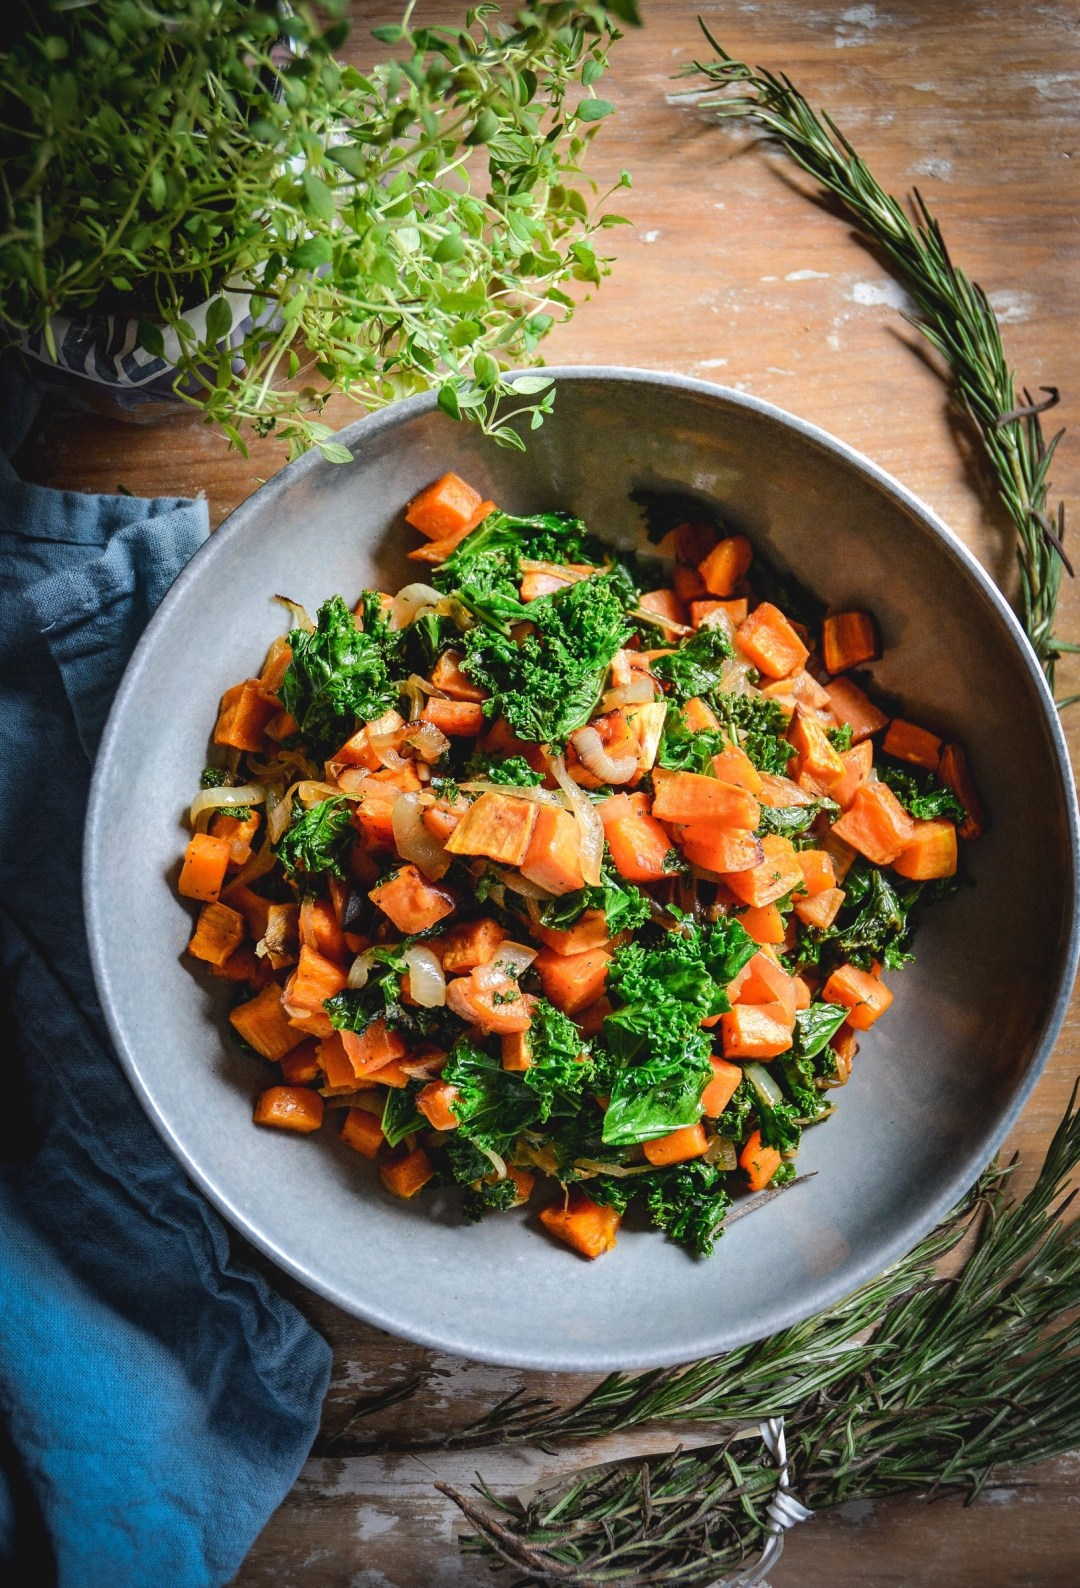 kale, sweet potatoes on plate, napkin and herbs